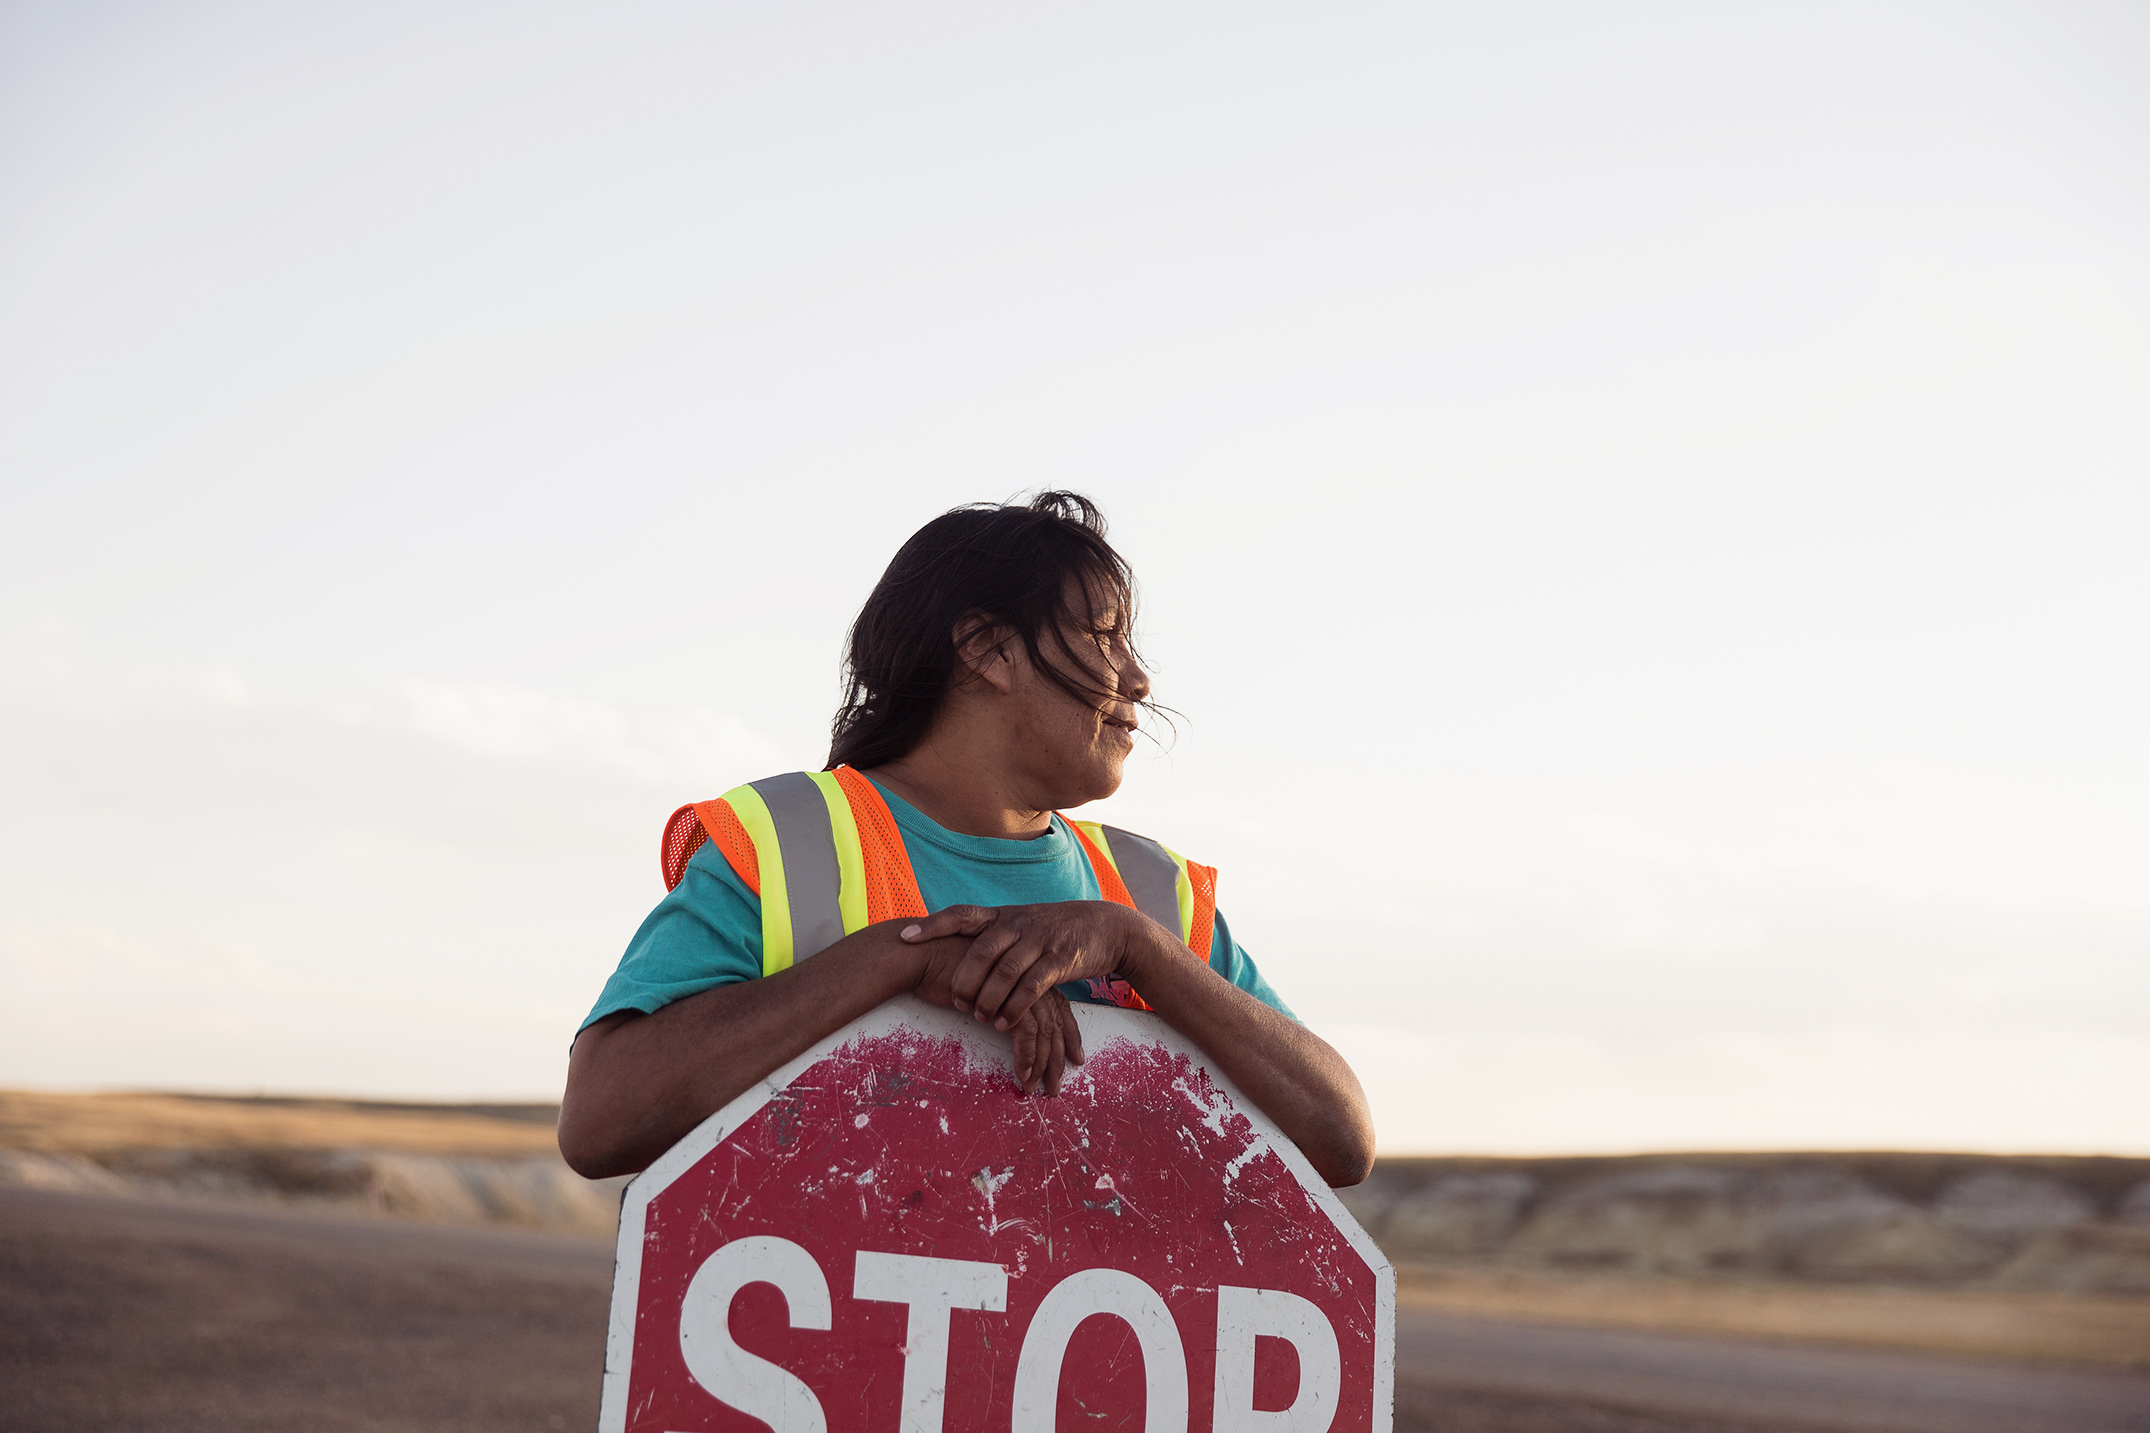 Mike Kane | Traffic flagger on the Pine Ridge Reservation | Seattle documentary, editorial, and commercial photography